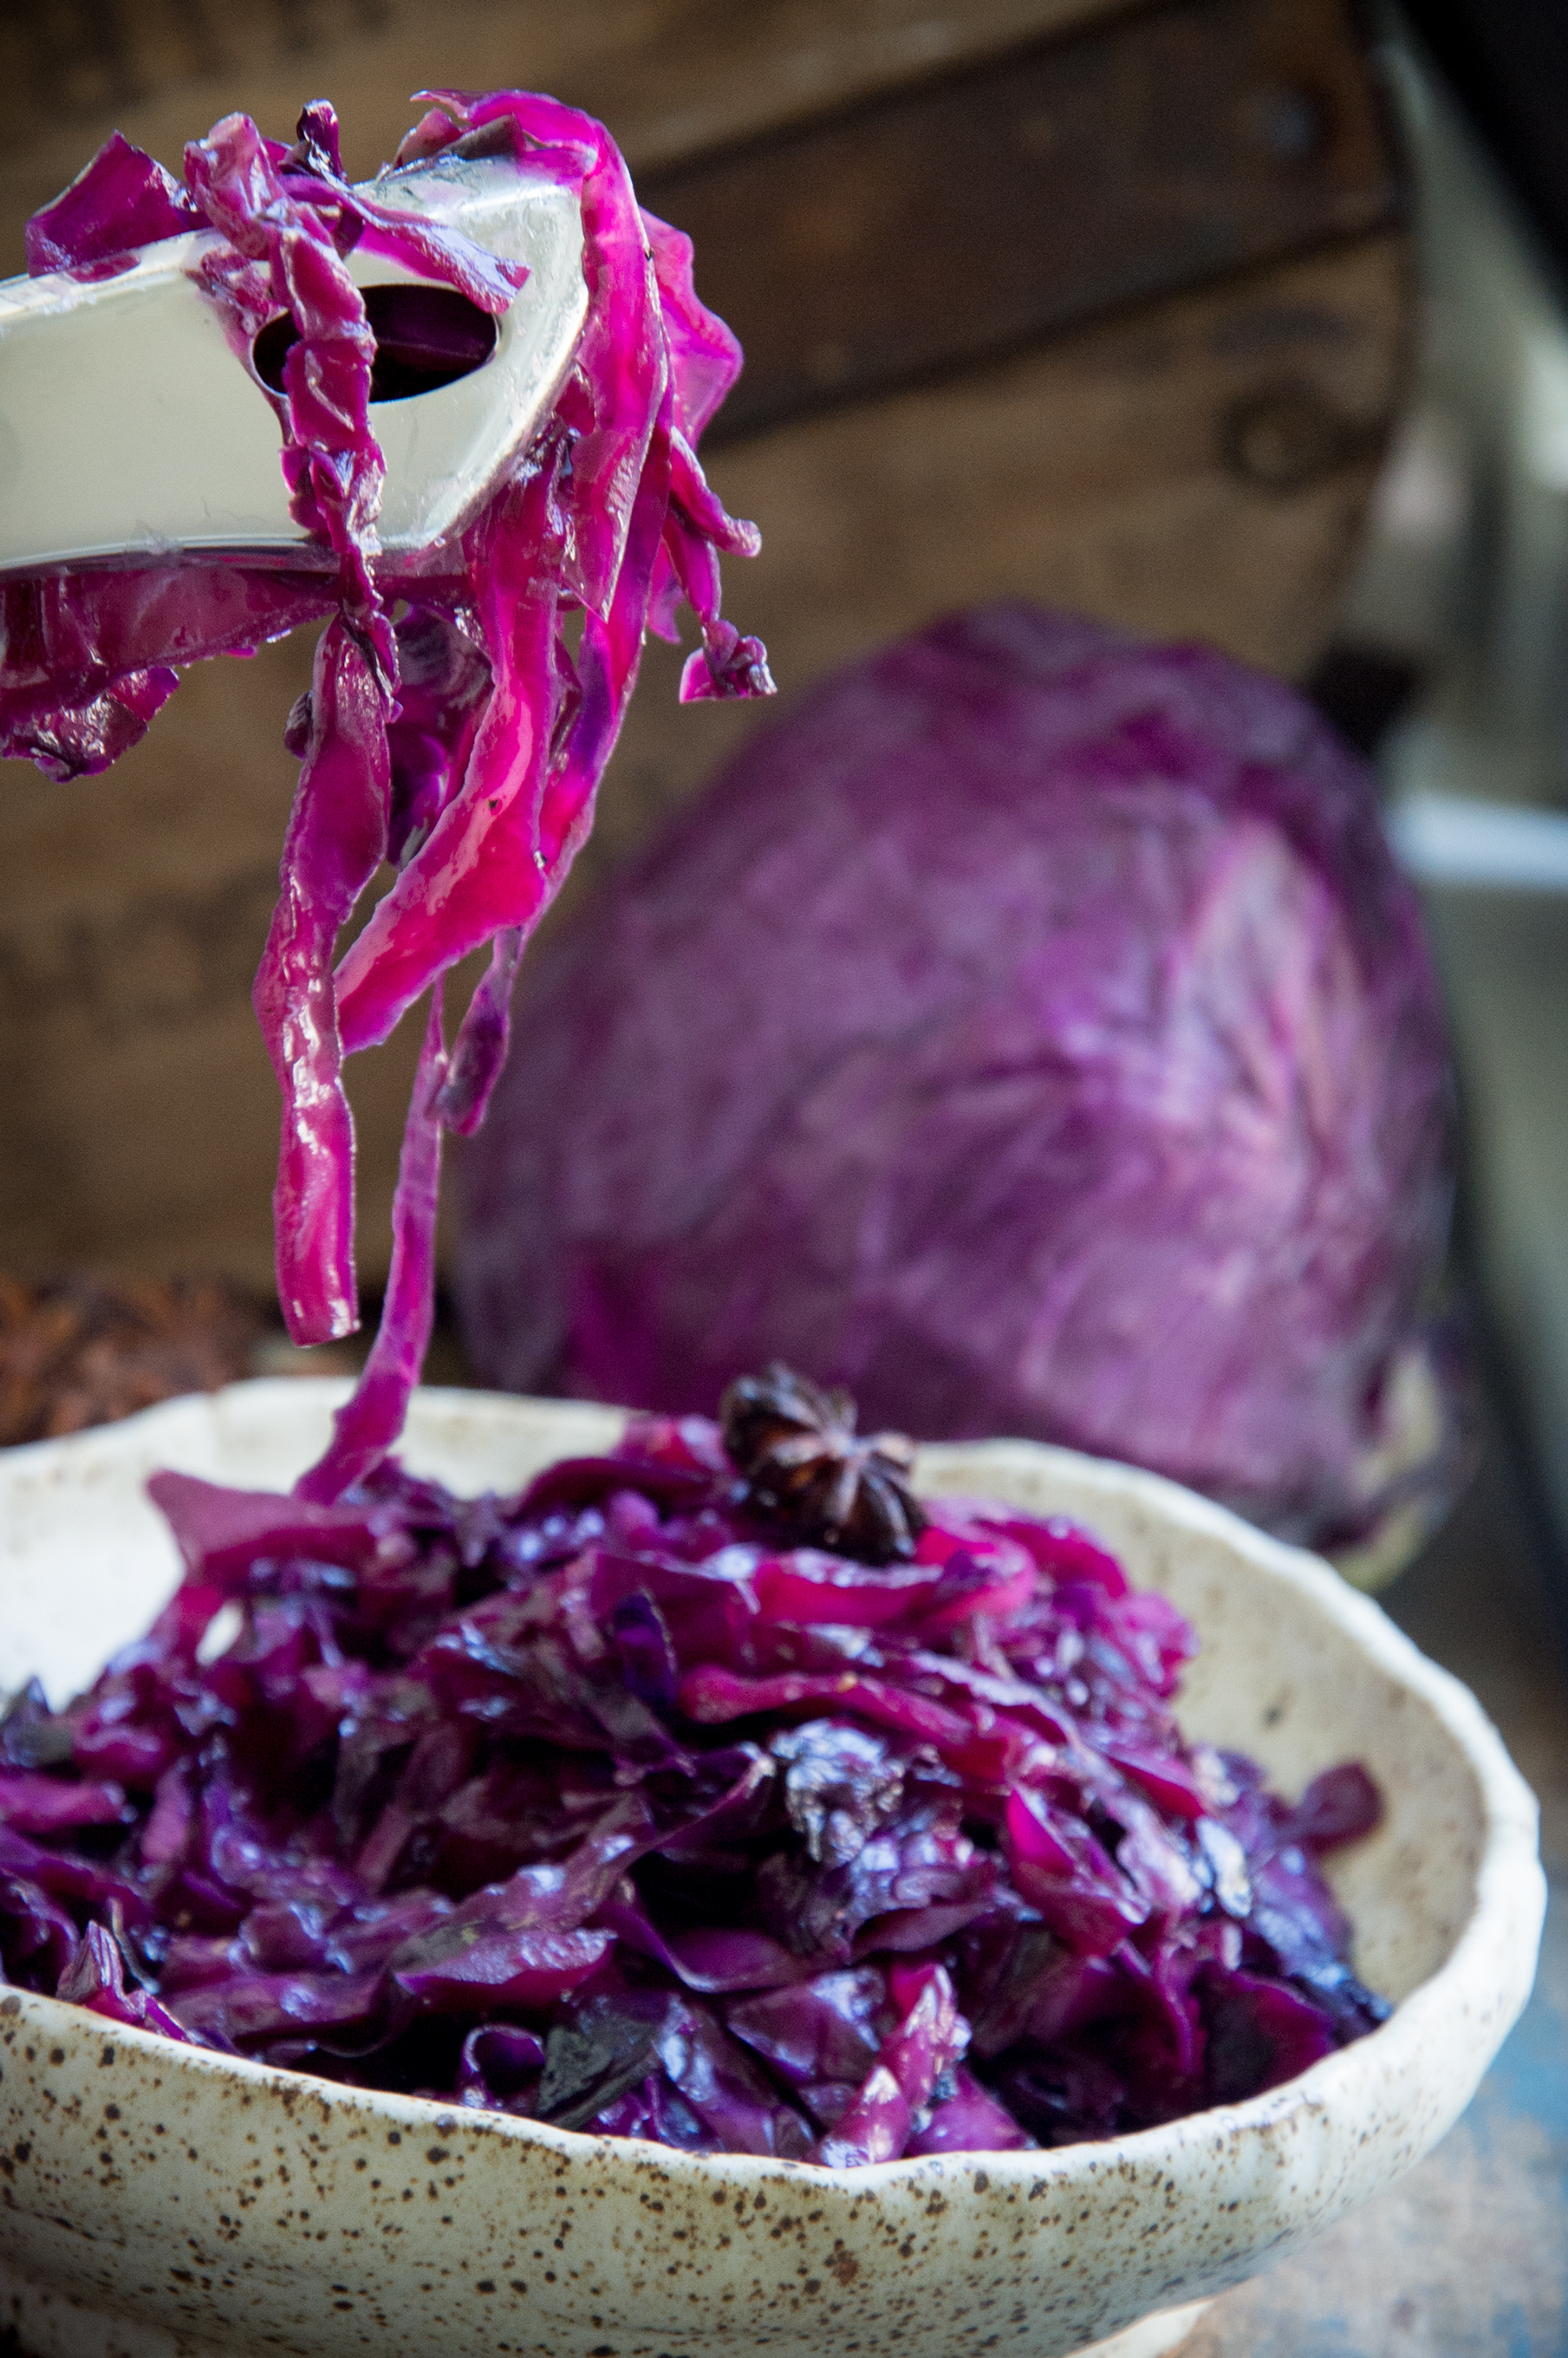 Low-Carb Sweet and Sour Red Cabbage-serving using tongs.